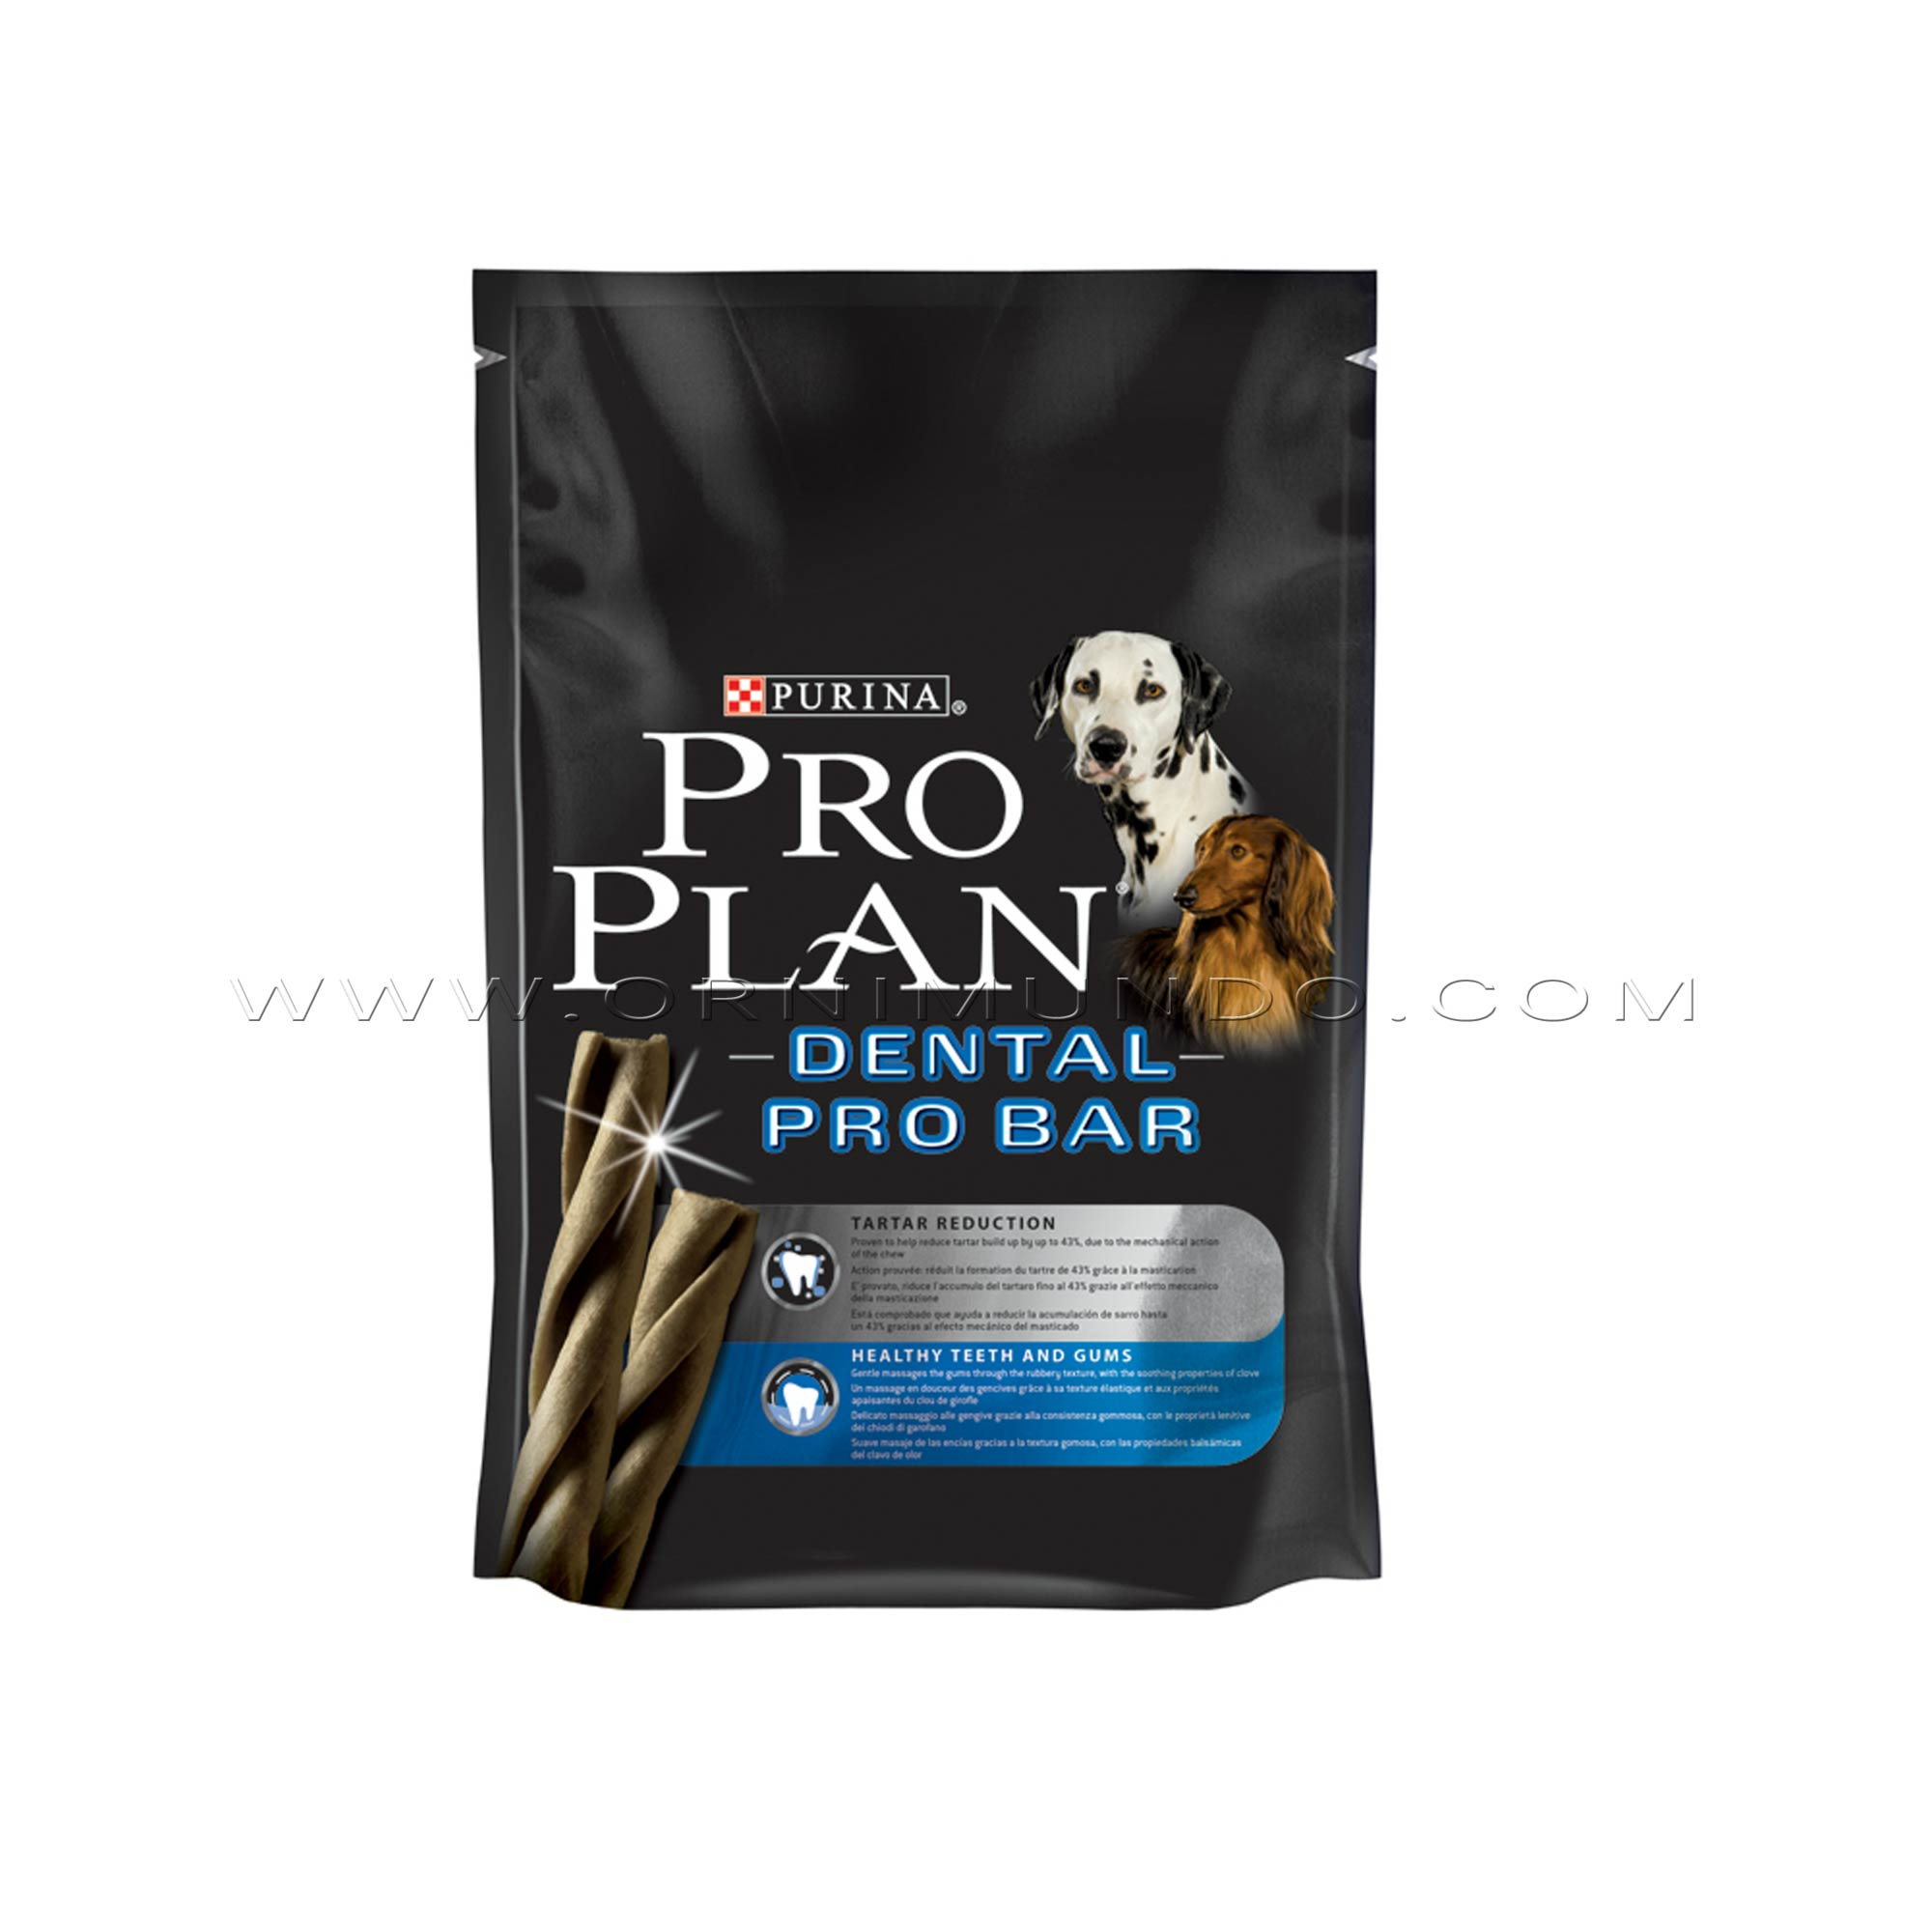 Purina Dental Probar